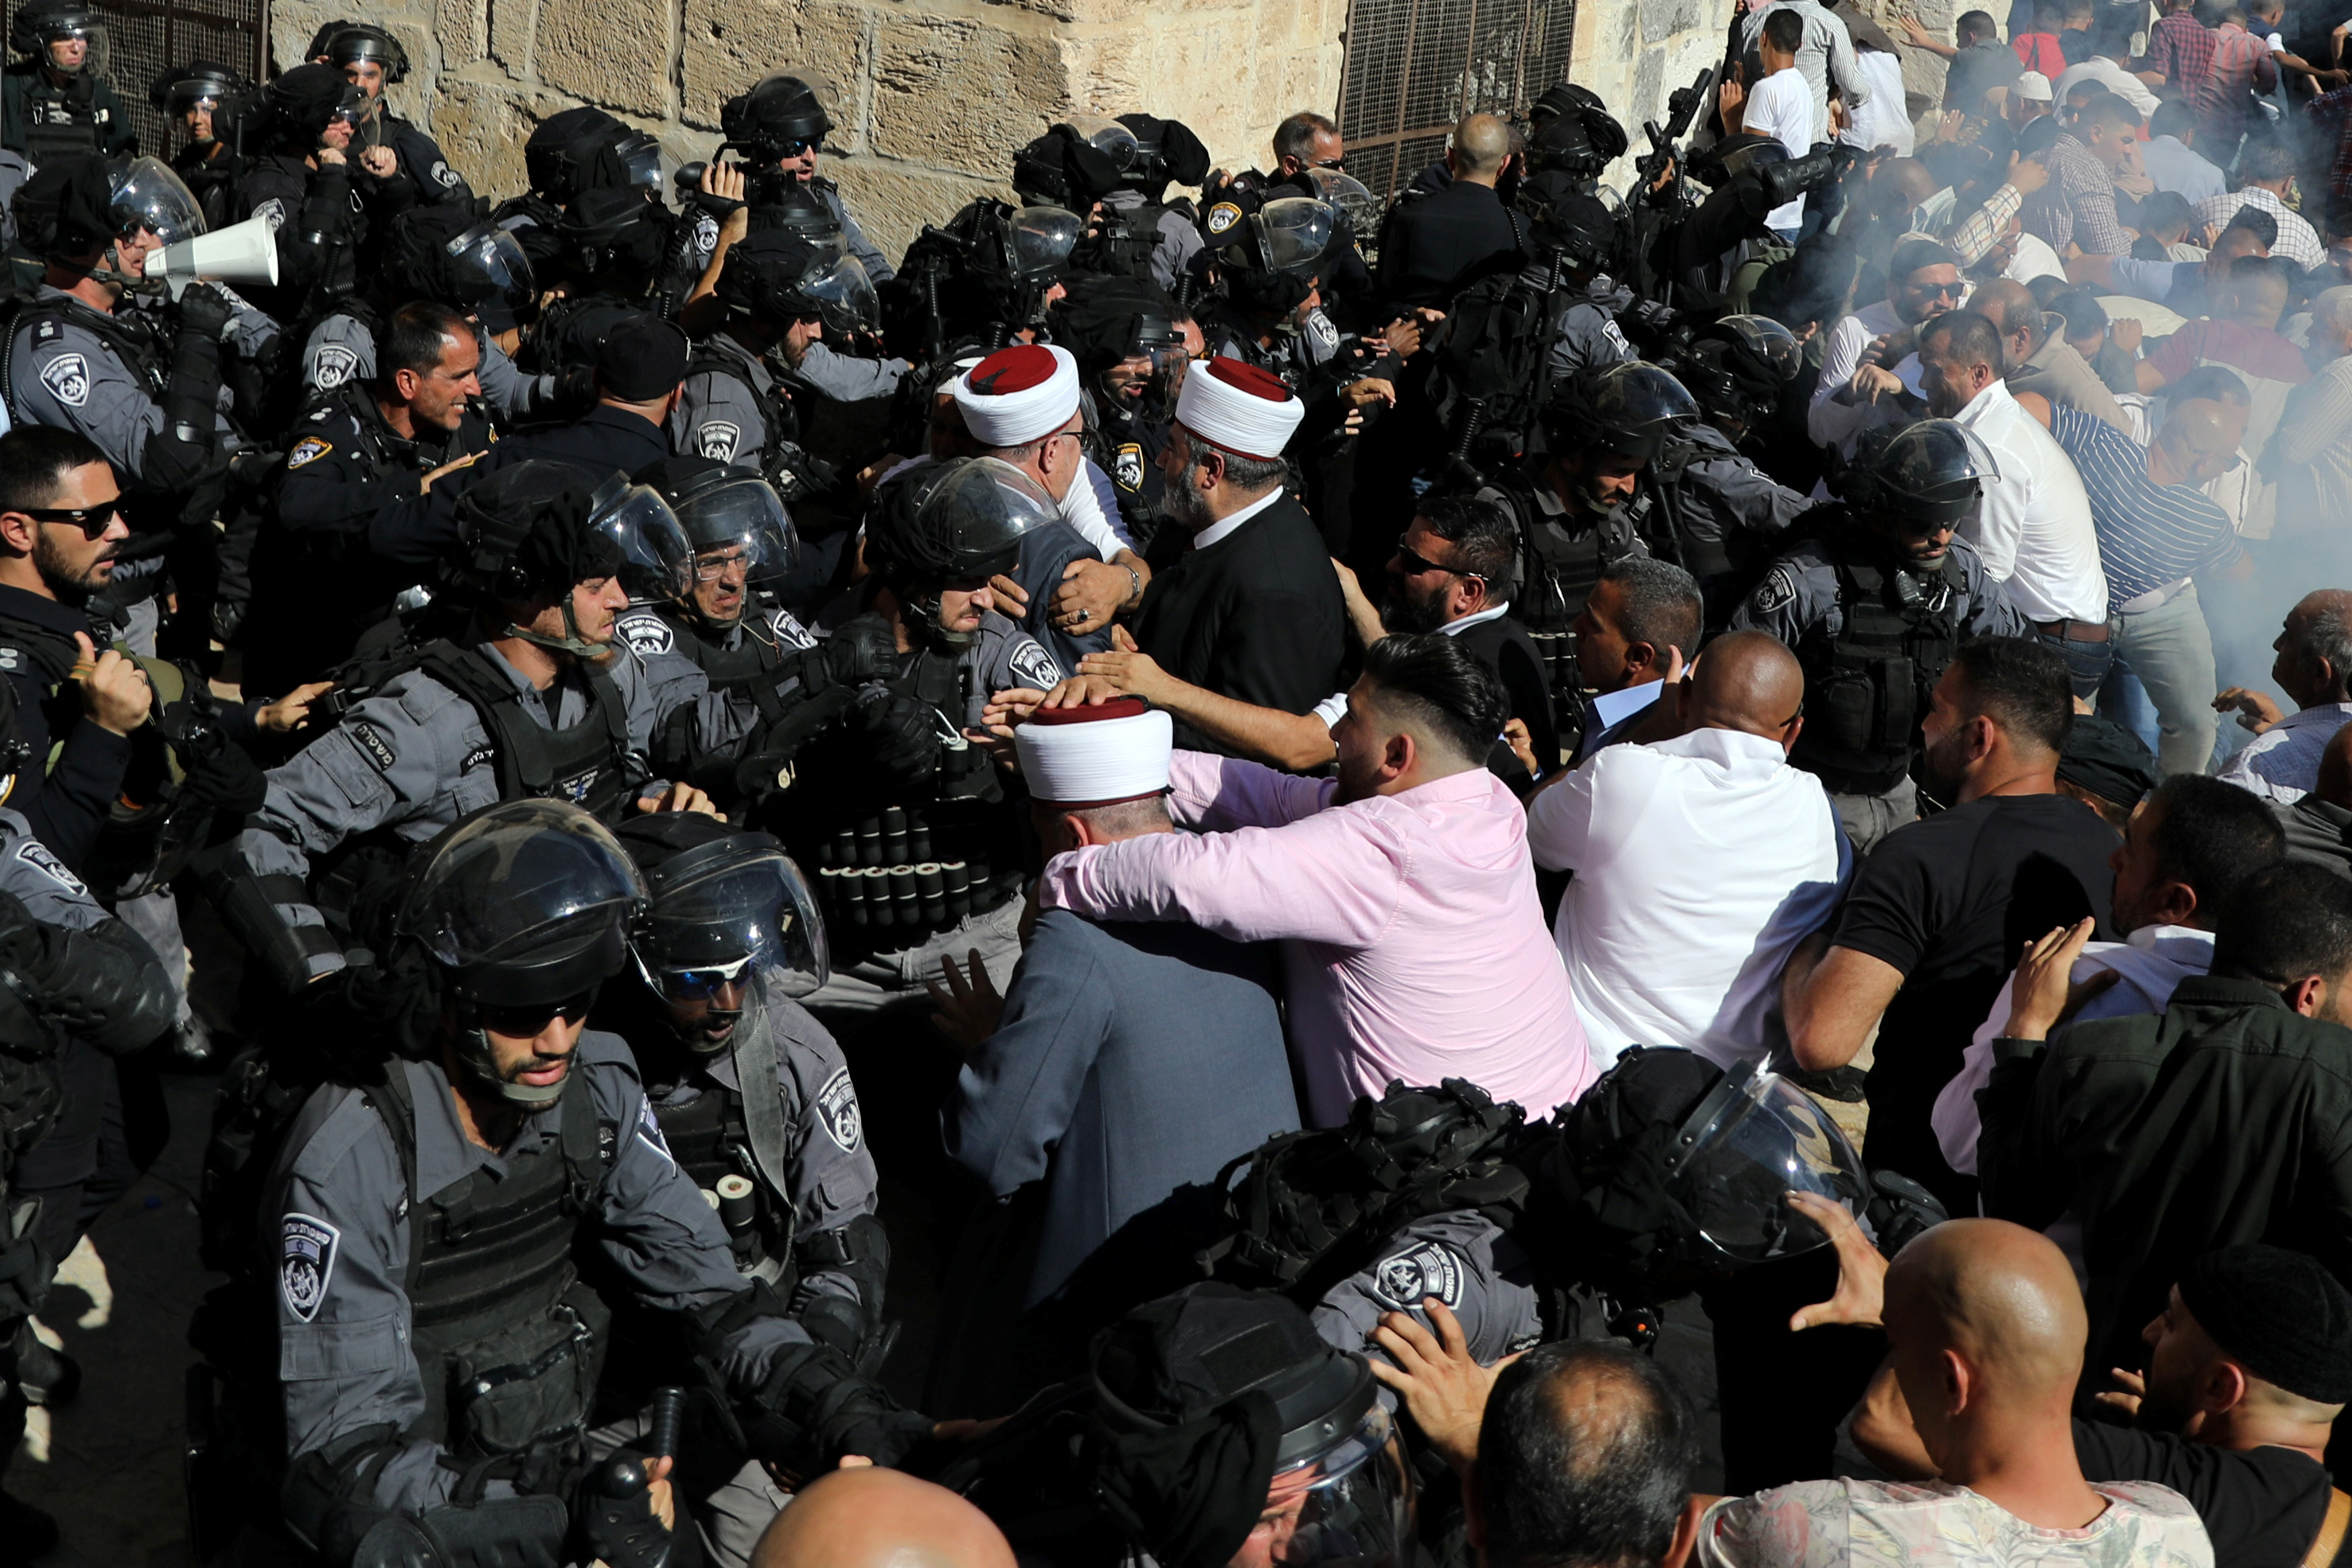 Israeli police clash with Palestinian worshippers on the compound known to Muslims as Noble Sanctuary and to Jews as Temple Mount as Muslims mark Eid al-Adha, in Jerusalem's Old City